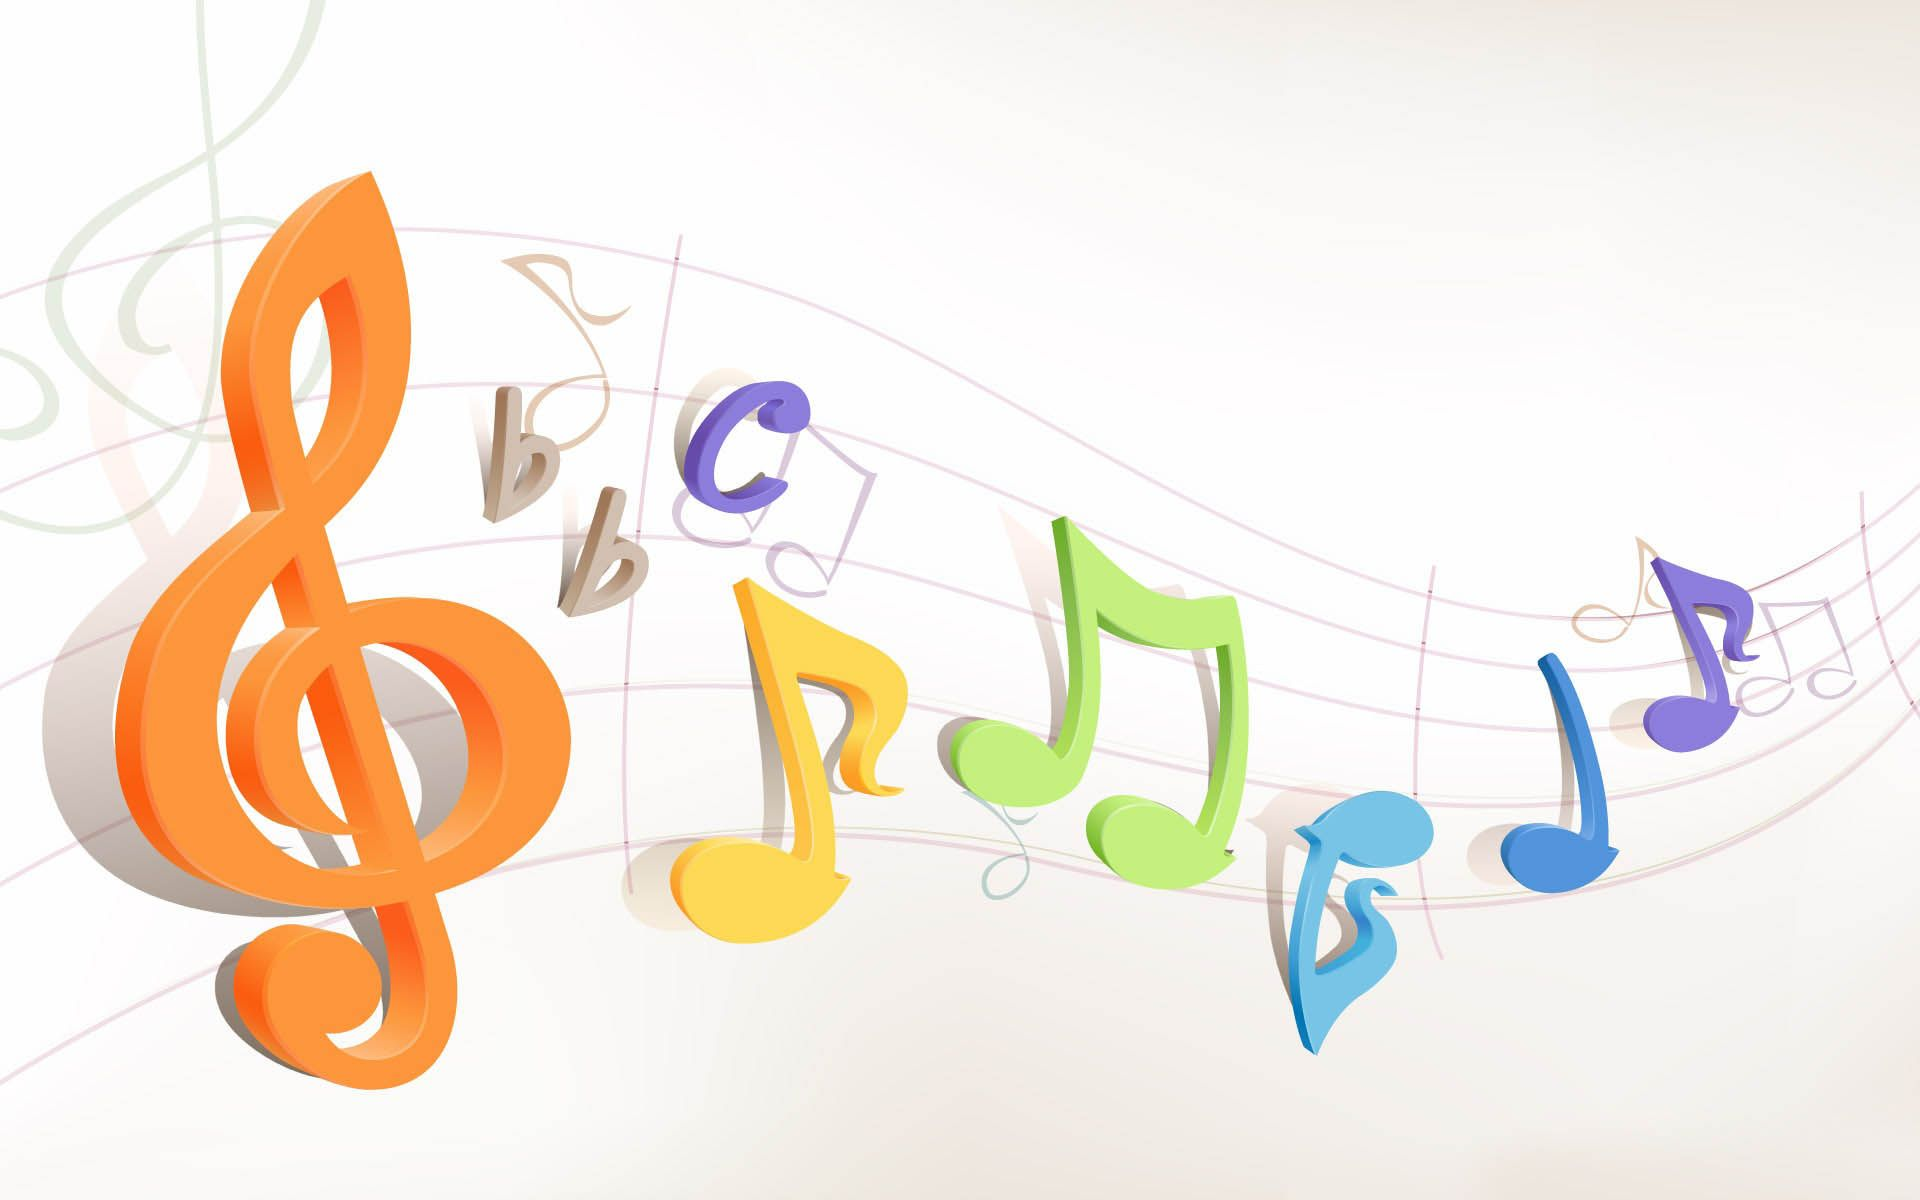 Neon clipart music note Colorful Music wallpaper Neon